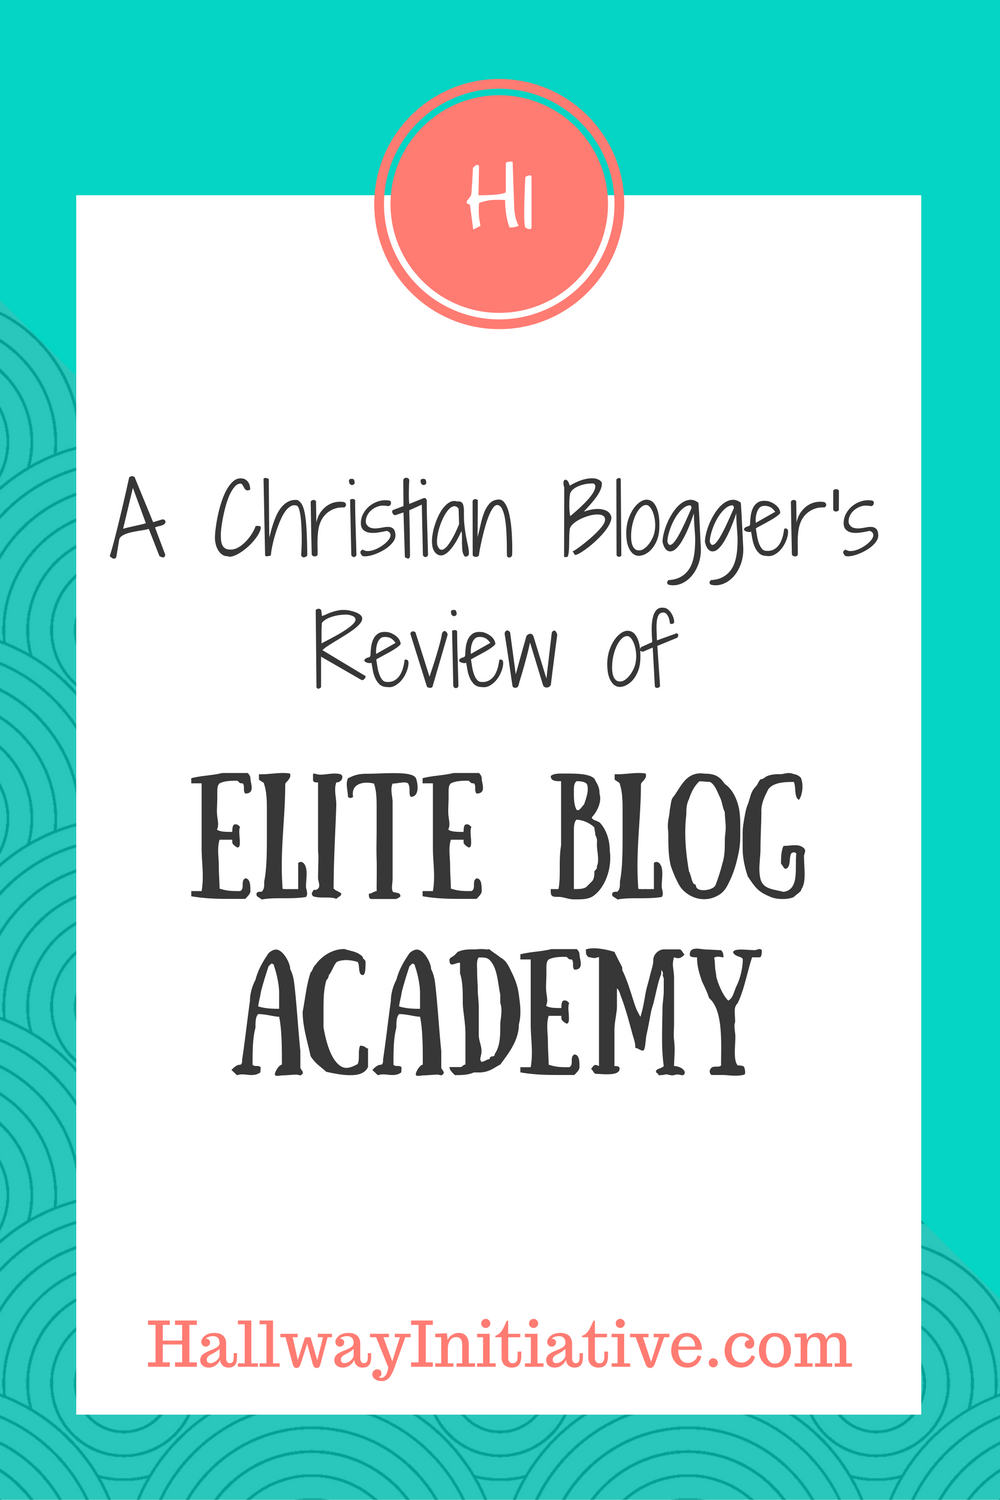 a Christian blogger's review of Elite Blog Academy